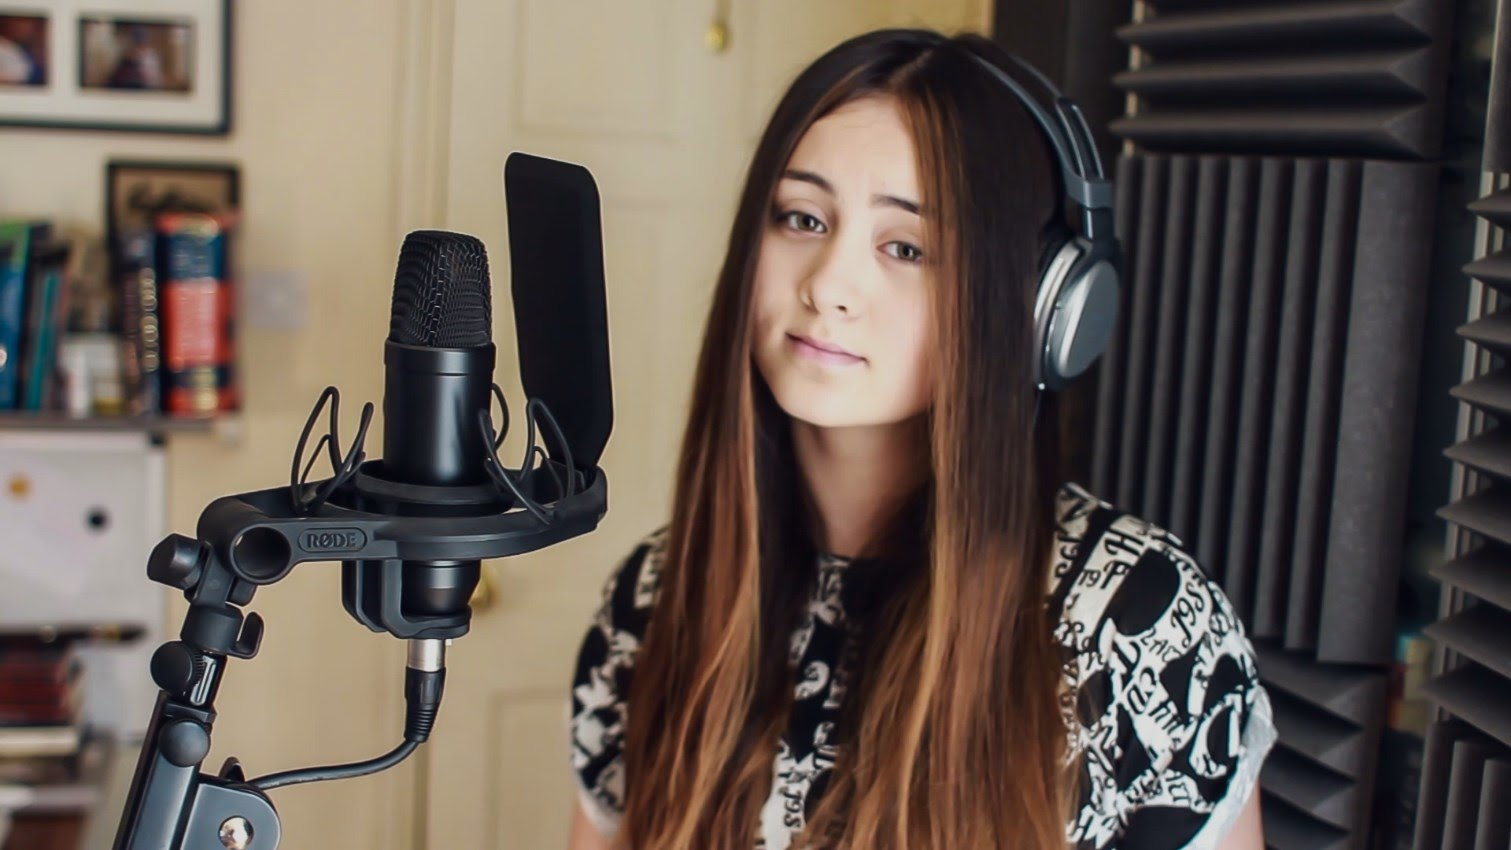 Chandelier - Sia (Cover by Jasmine Thompson) Lyrics - Meeko Spark TV